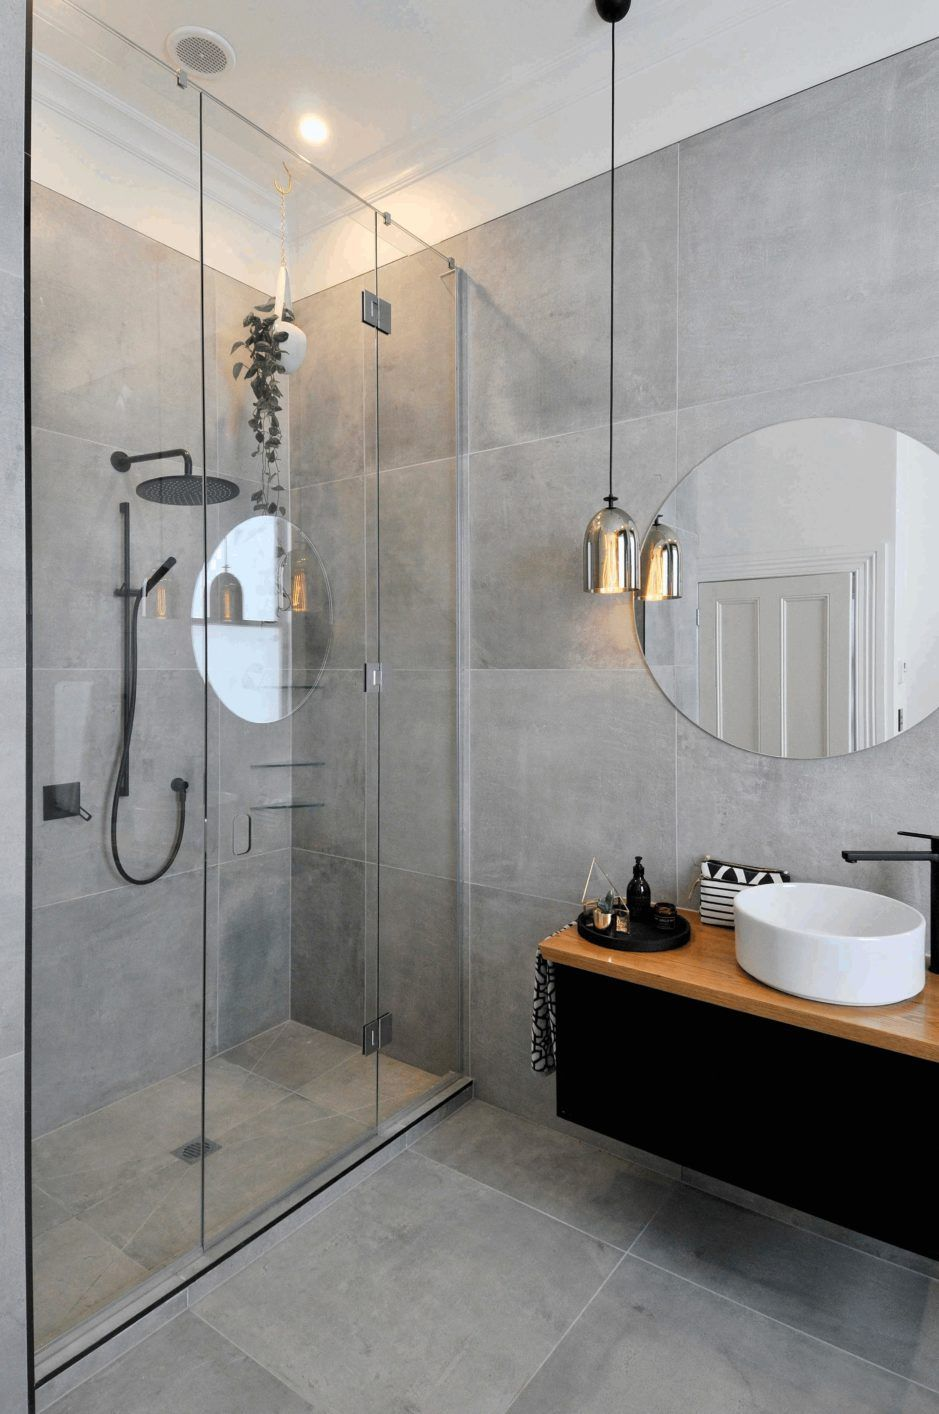 Gray Bathroom Ideas Obtain Inspired With These Gray Bathroom Enhancing Ideas Graybathroom Modern Bathroom Design Modern Bathroom Bathroom Interior Design